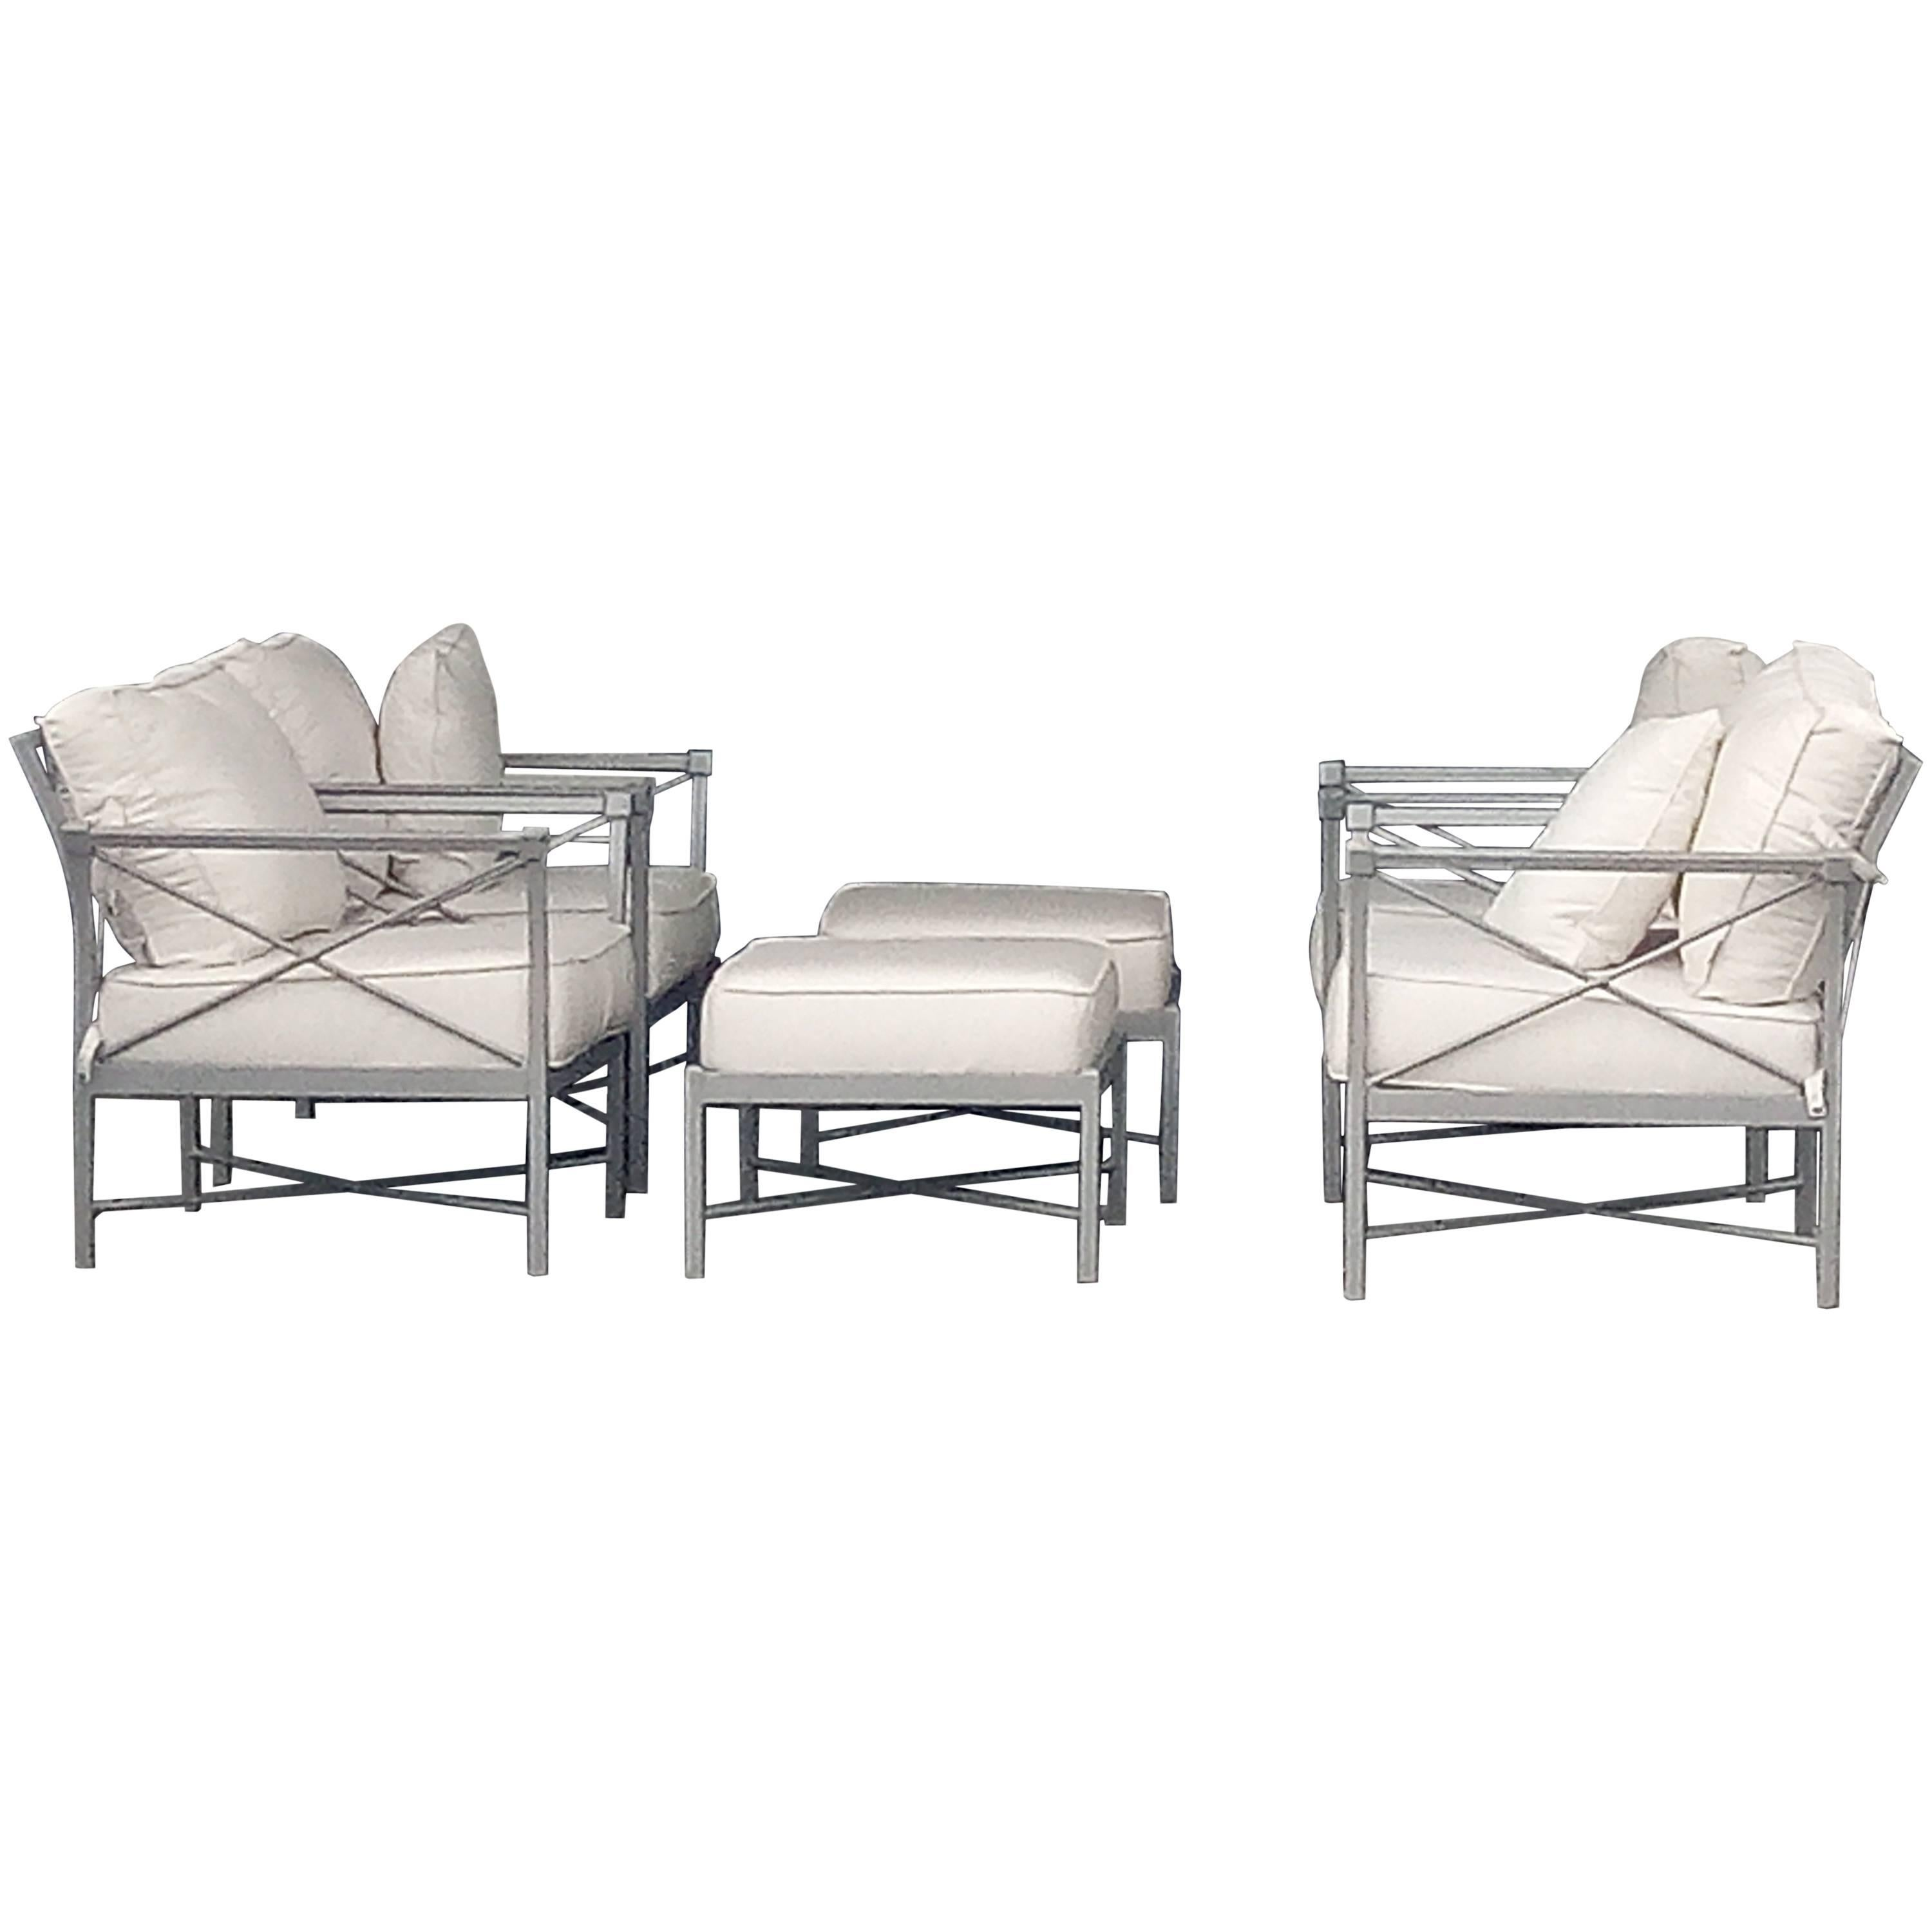 Mid century modern set six garden lounge chairs and ottoman chic x design for sale at 1stdibs